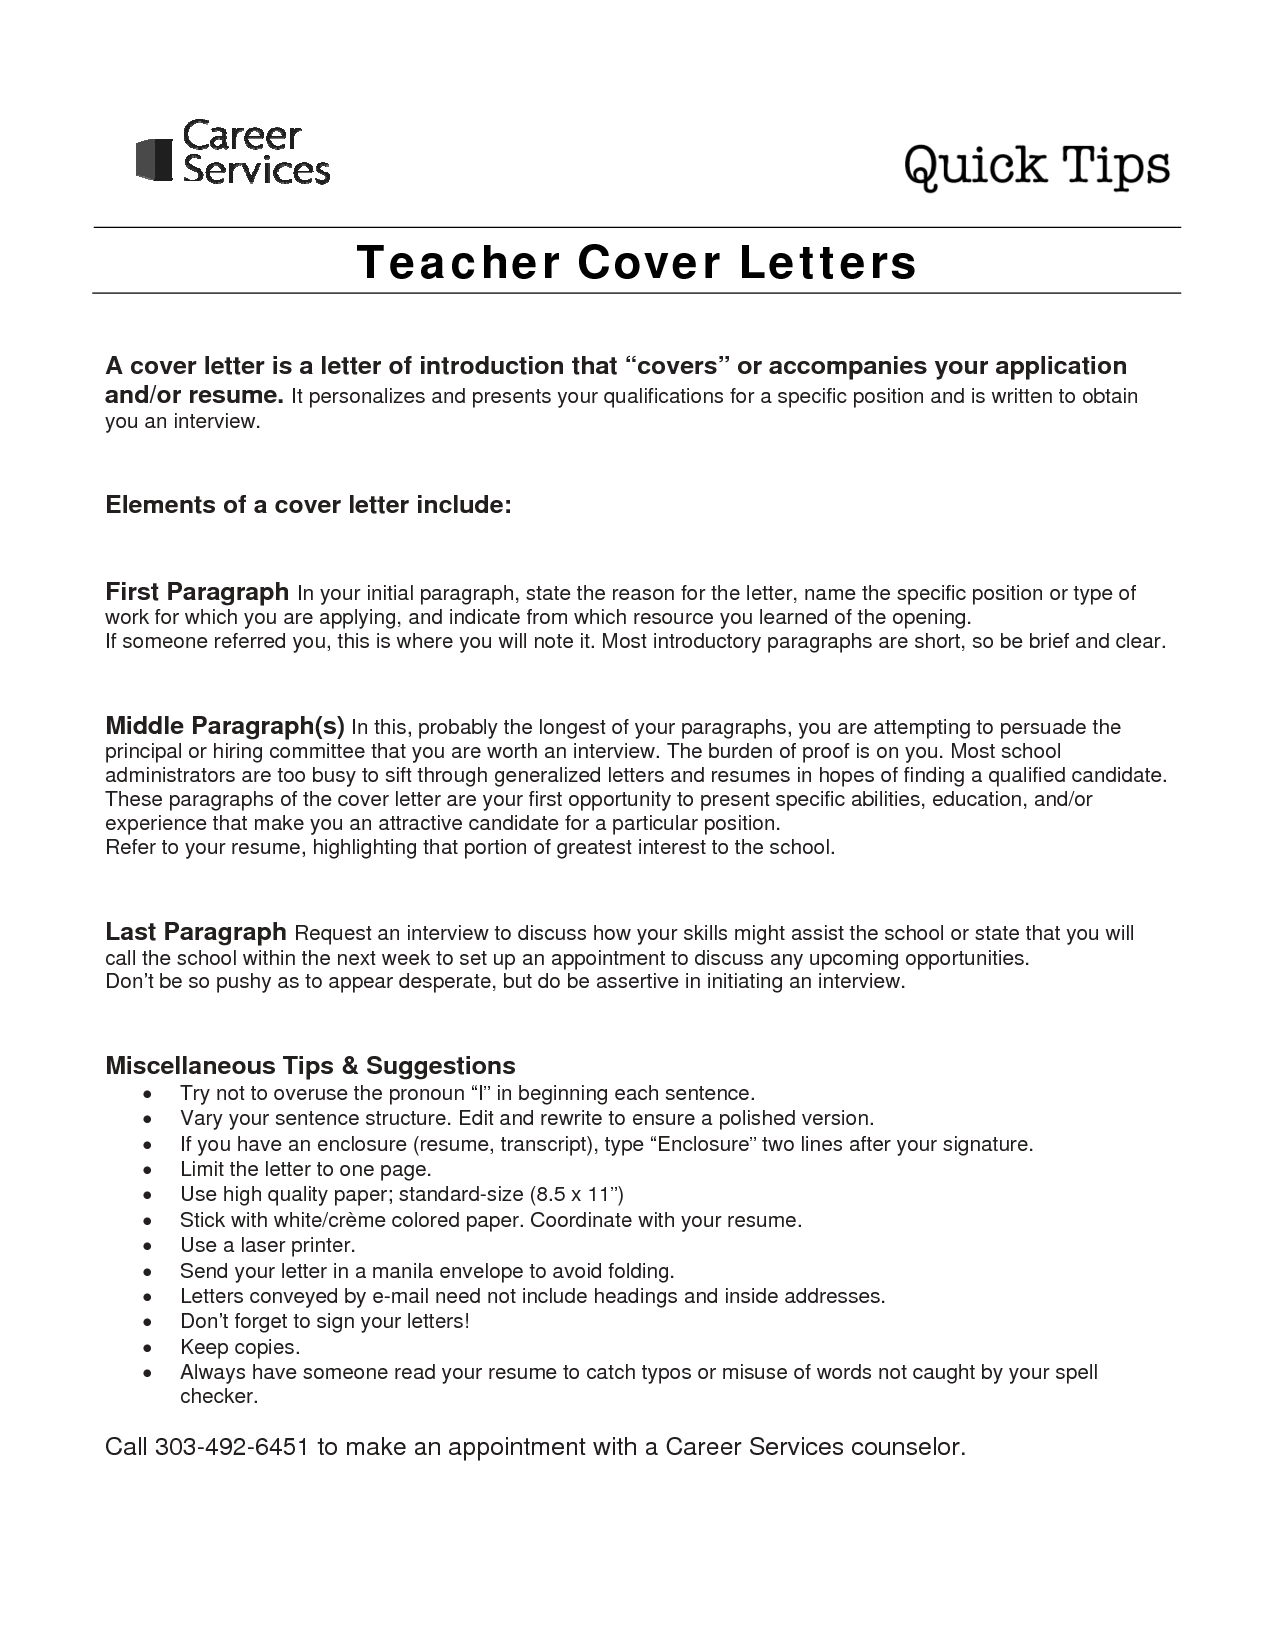 builder teachers resume template for sample cover letter teacher training high school - What Is A Cover Letter To A Resume